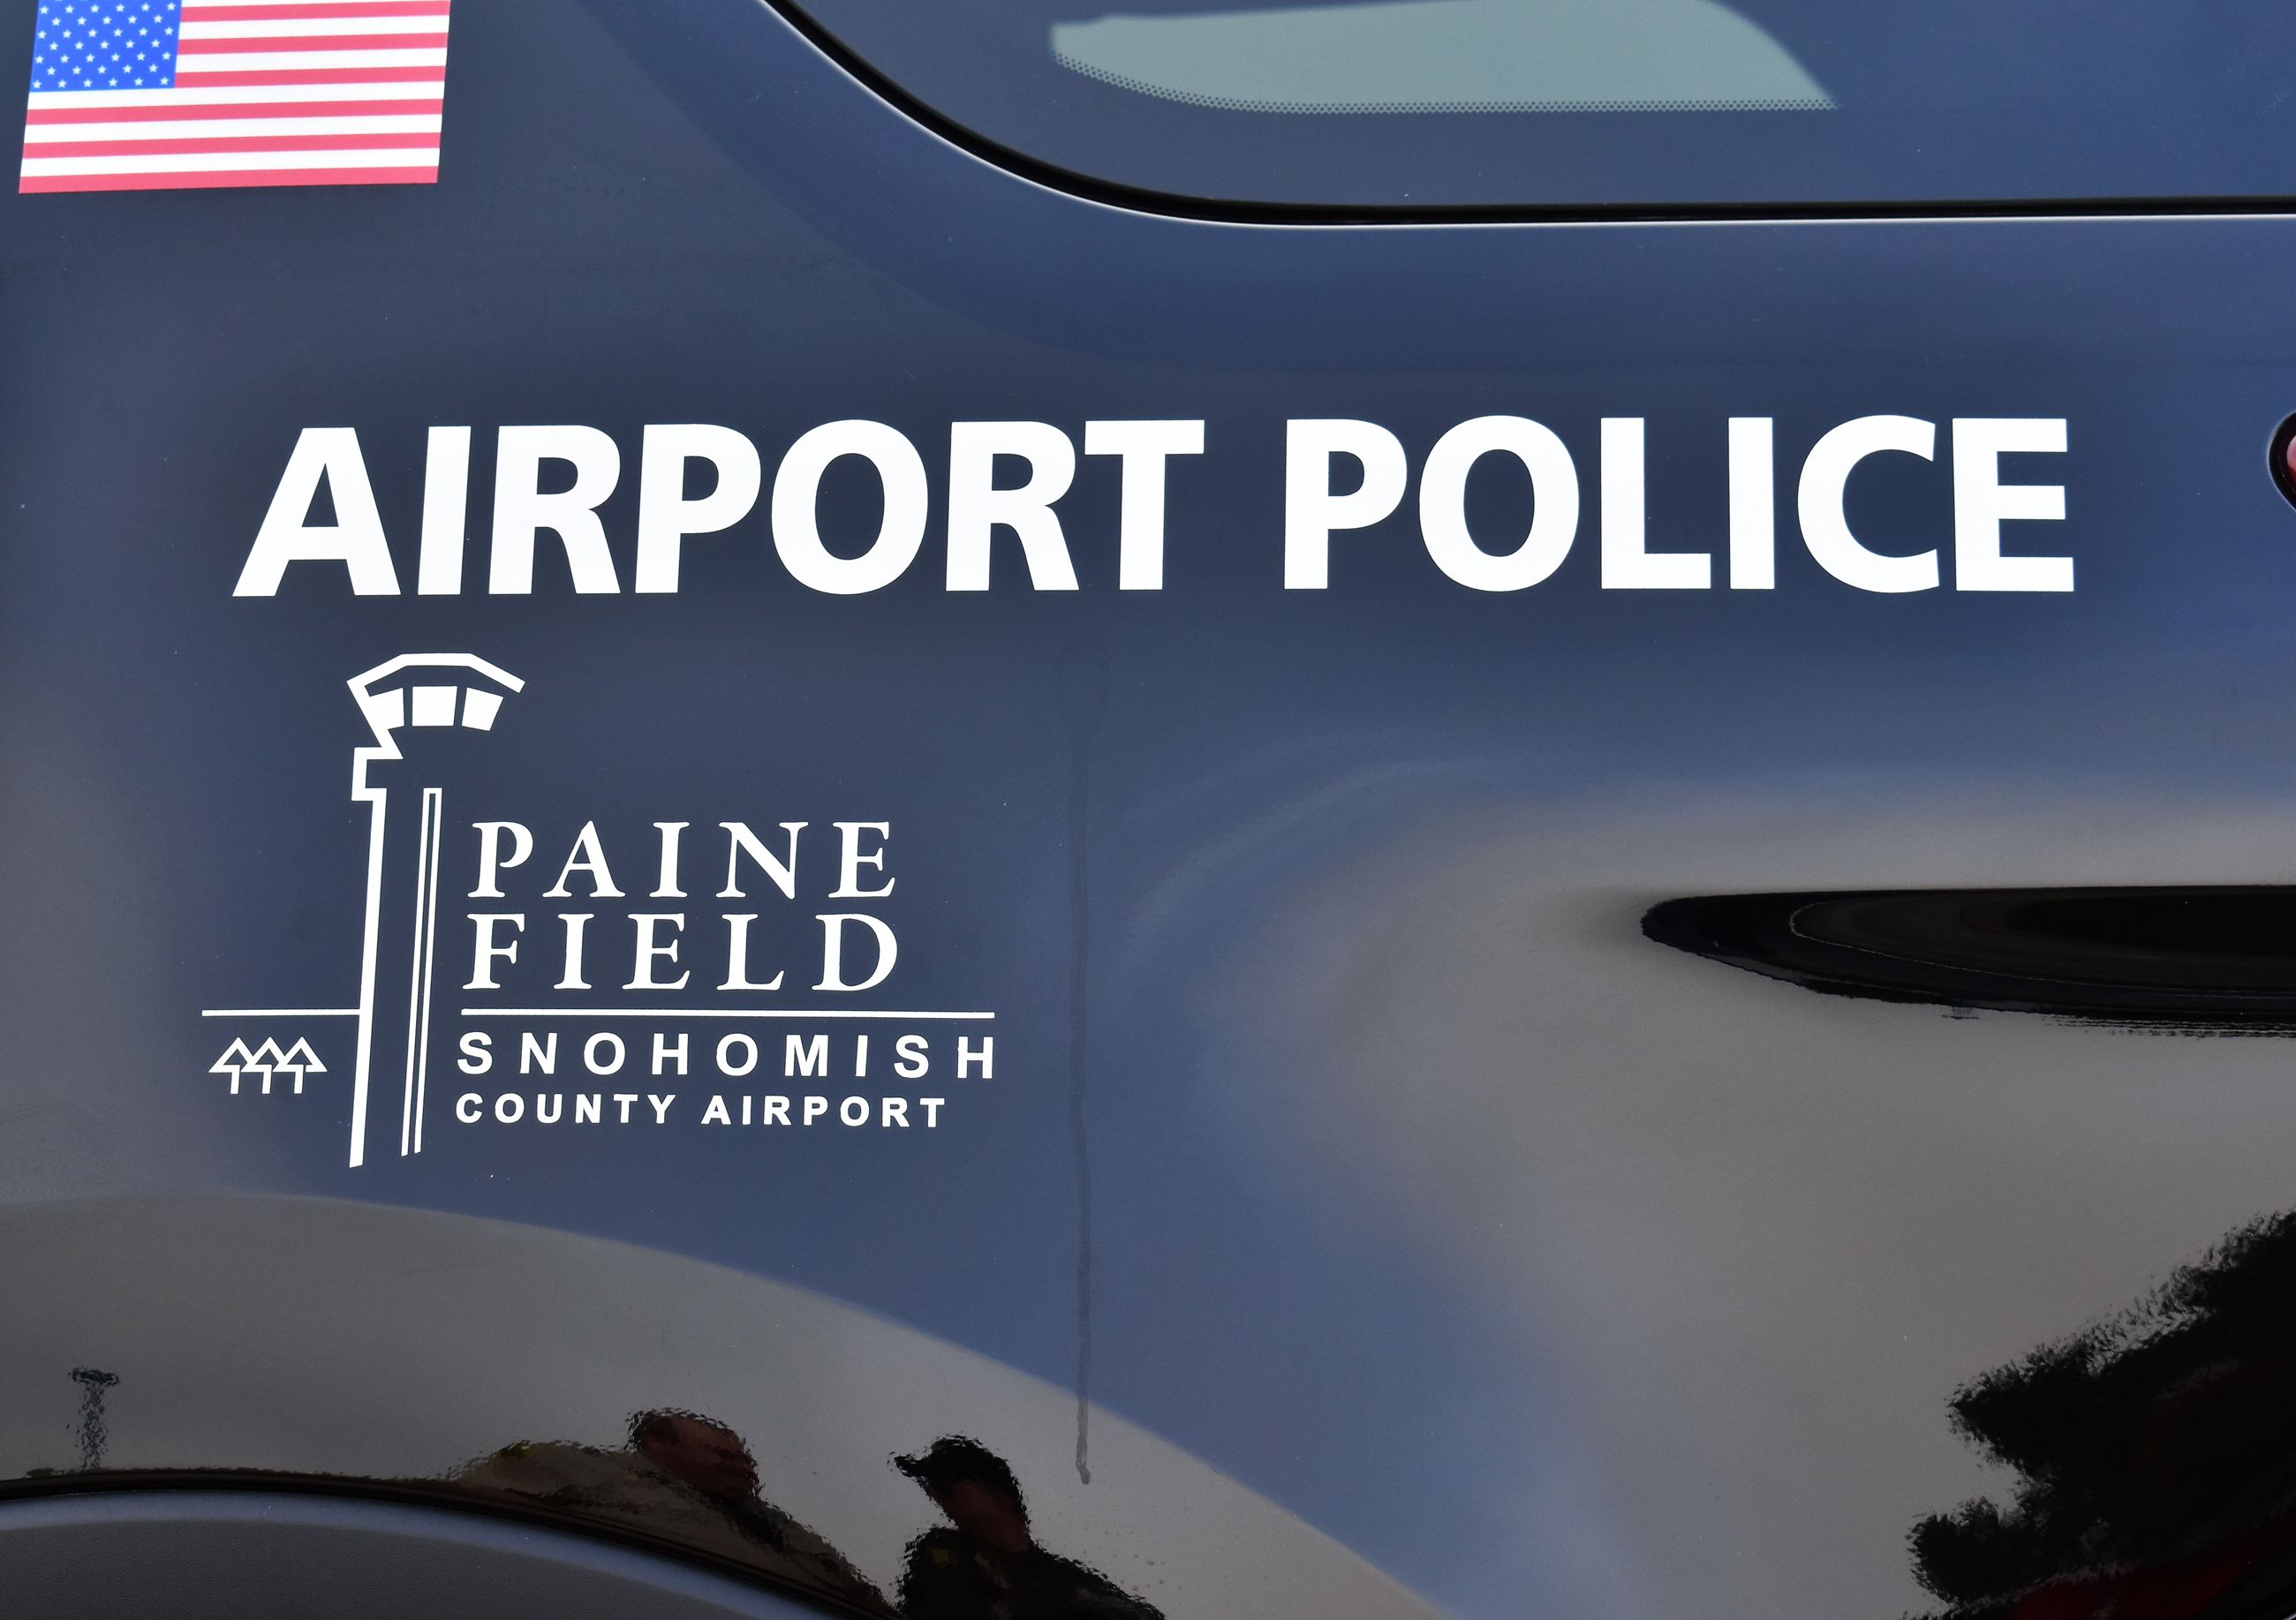 Airport police logo